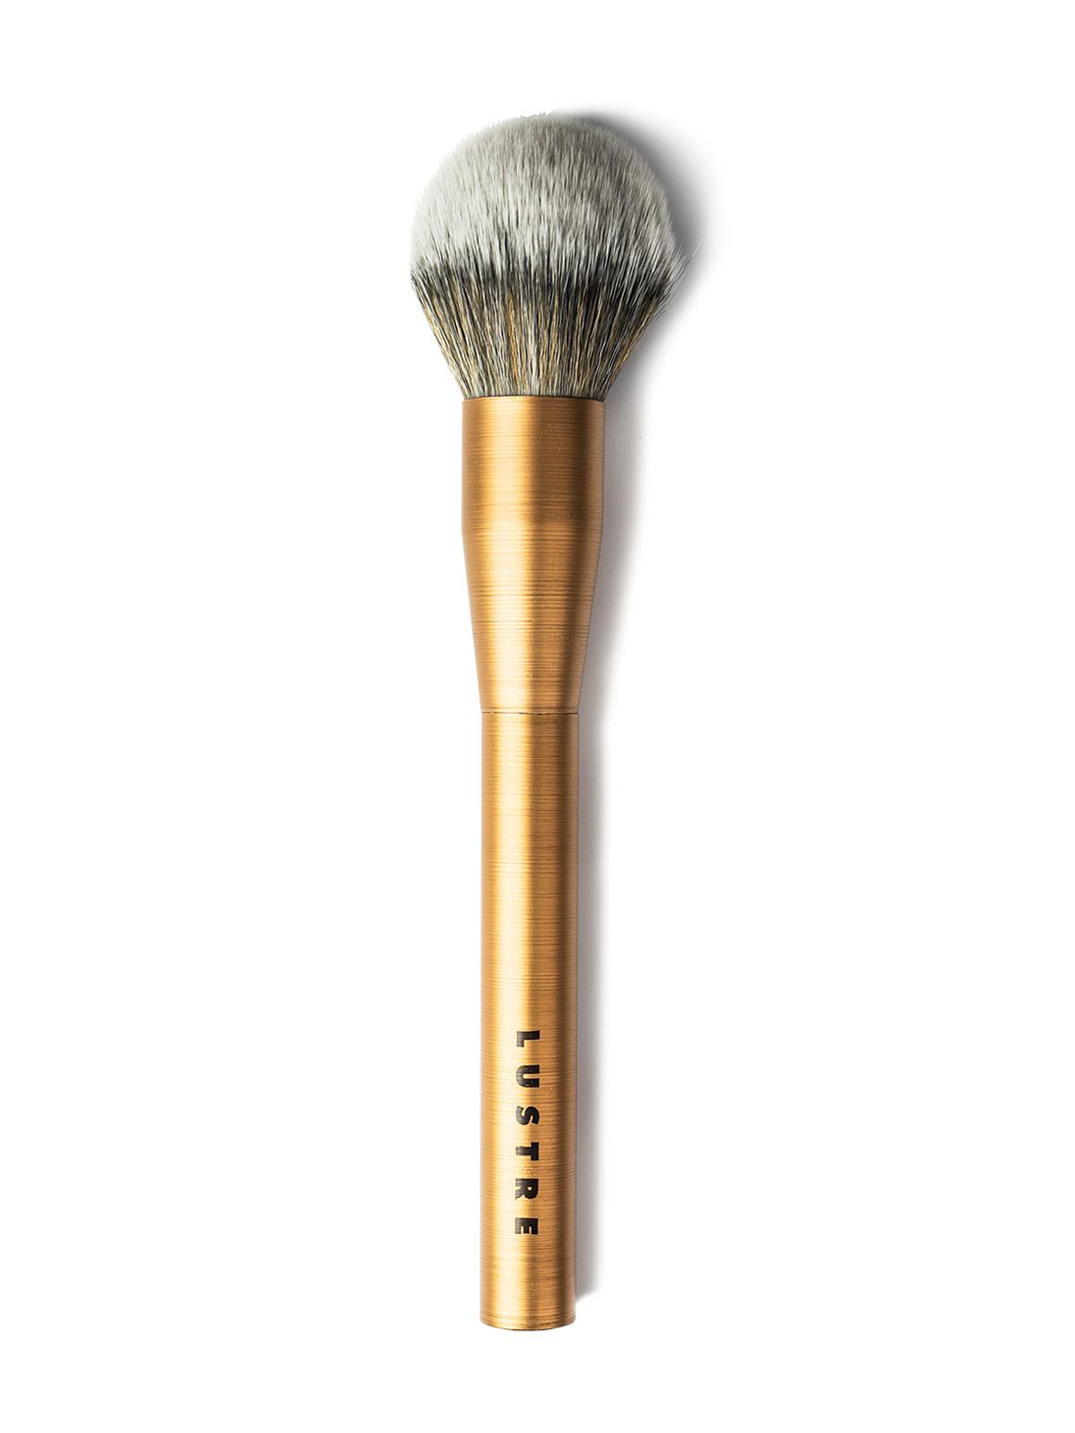 Lustre Pro Makeup Brush F101 Powder Brush